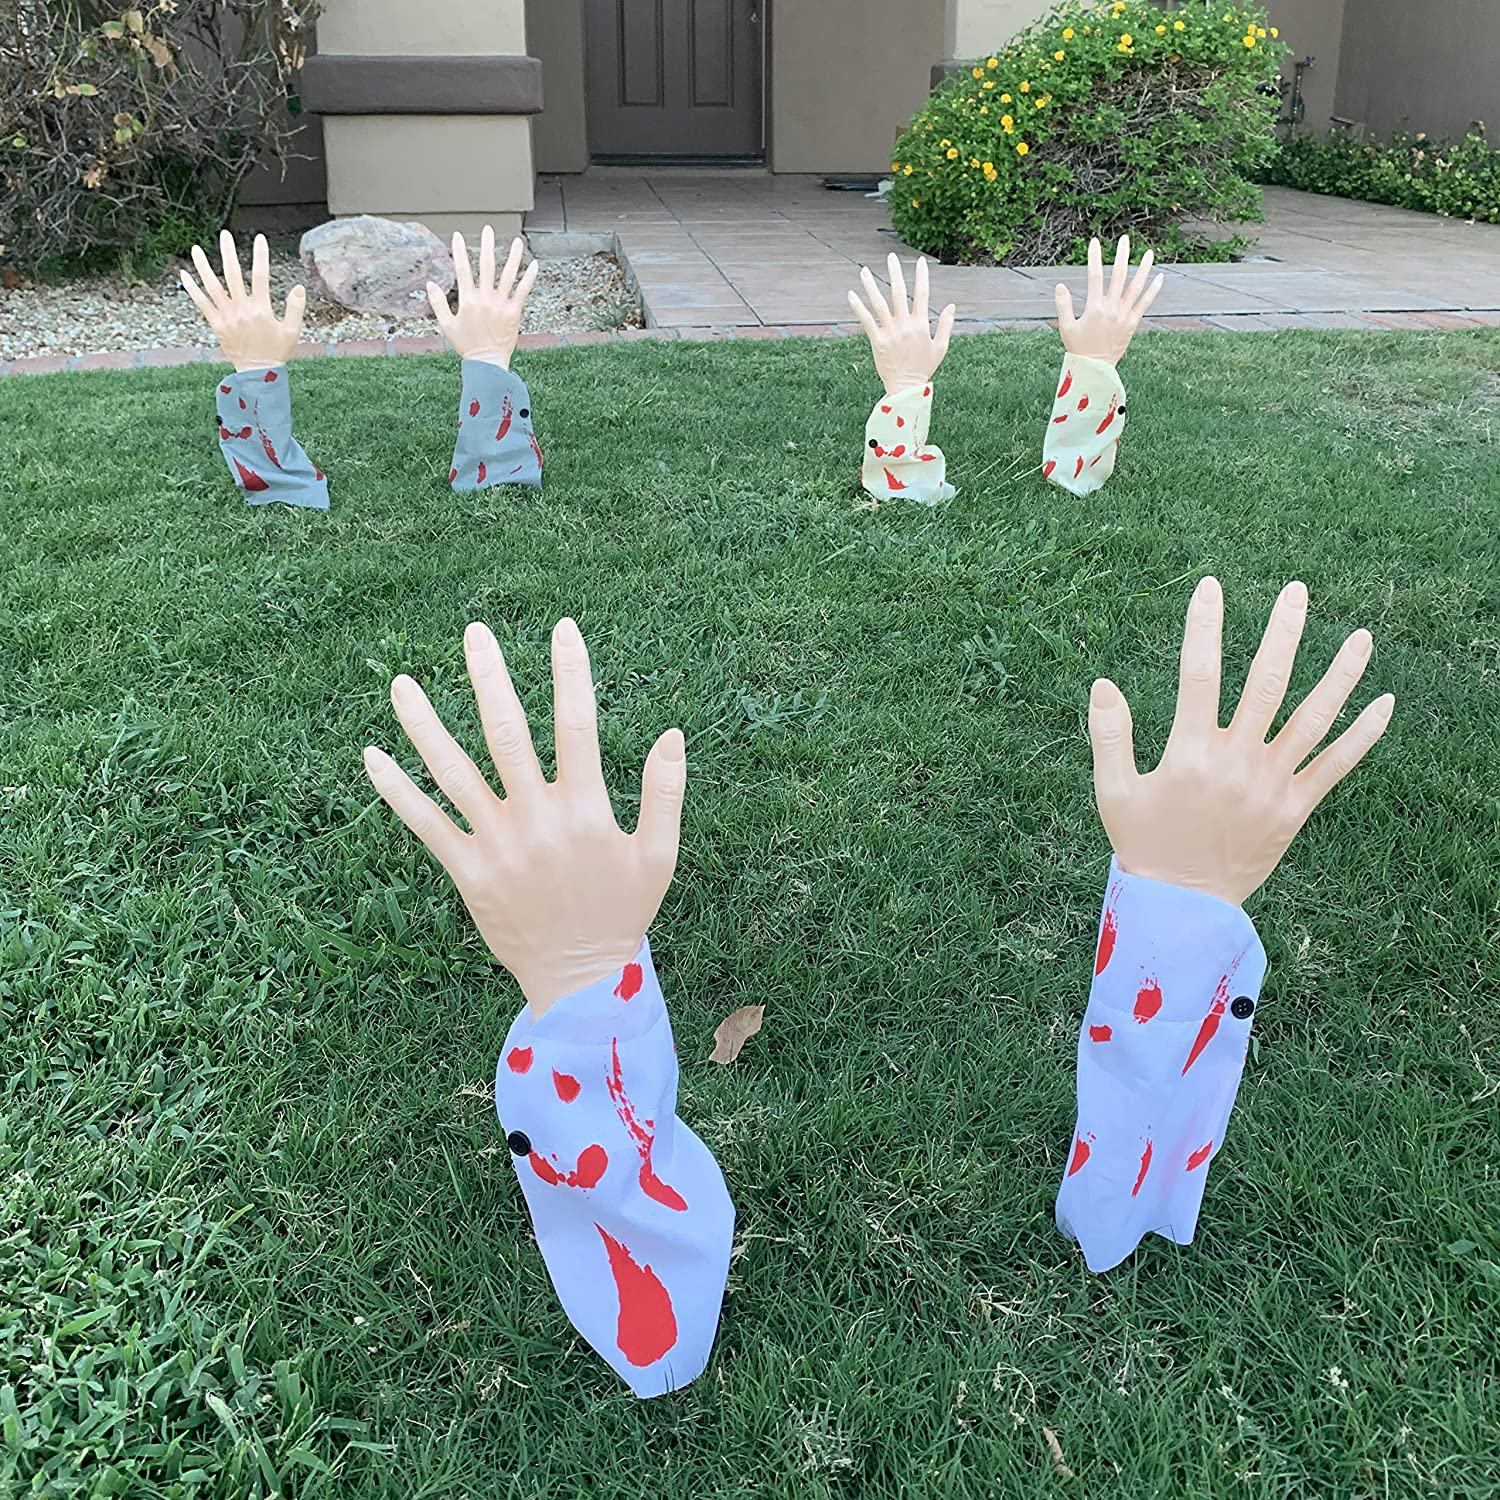 JOYIN Realistic Zombie Arm Stakes with Blood Stain, Halloween Yard Groundbreaker Stakes for Halloween Outdoor Decorations (3 Pair)